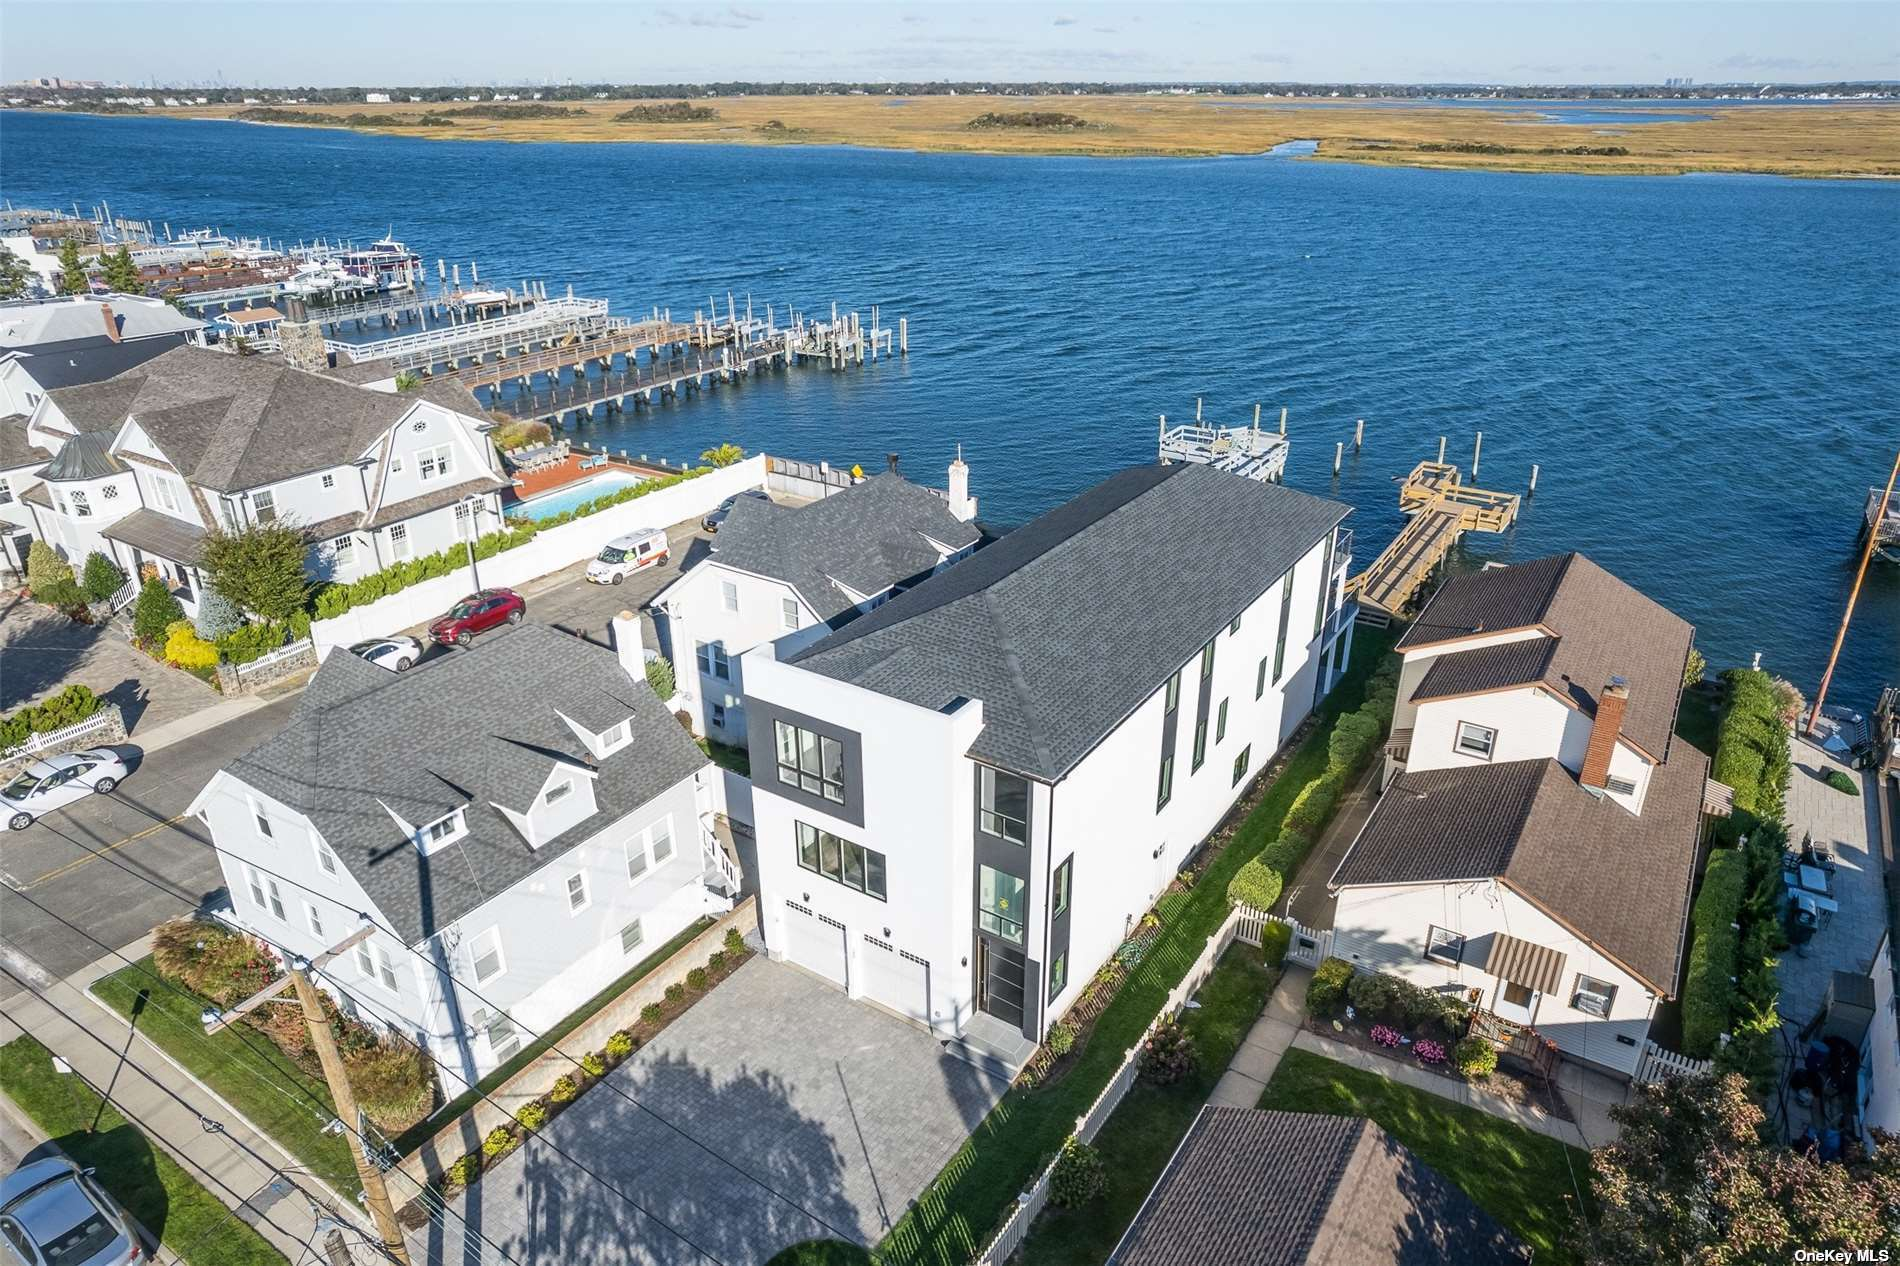 Experience Bayfront Luxury in this 4,000 sq.ft. FEMA Compliant Brand New 4 Bedr, 3.5 Bath Contemporary in the Artsy West End! Great room has open layout so you will see the bay from wherever you are: in your family room, eat in kitchen, formal dining room, and living room w/fireplace, sliders to oversized decking from which you can access the beautifully landscaped yard, patio, and dock with a sitting area. Upstairs there are 2 master bedroom suites (North-facing and South-facing) each has own bathroom, the bay facing one has sliders to a bay front decking... there are also 2 guest bedrooms that share one full bathroom. Laundry, closet galore, large bedrooms, CAC w/3 zones, top quality finishing materials, beach inspired colors, come home to serenity, bring your boat, kayak, fishing rods... Perfectly designed for indoor outdoor entertaining. Still time to customize... Plans in my office & can arrange meeting with the builder... Under 1hr to NYC, near cafes, shops & beach!!!!